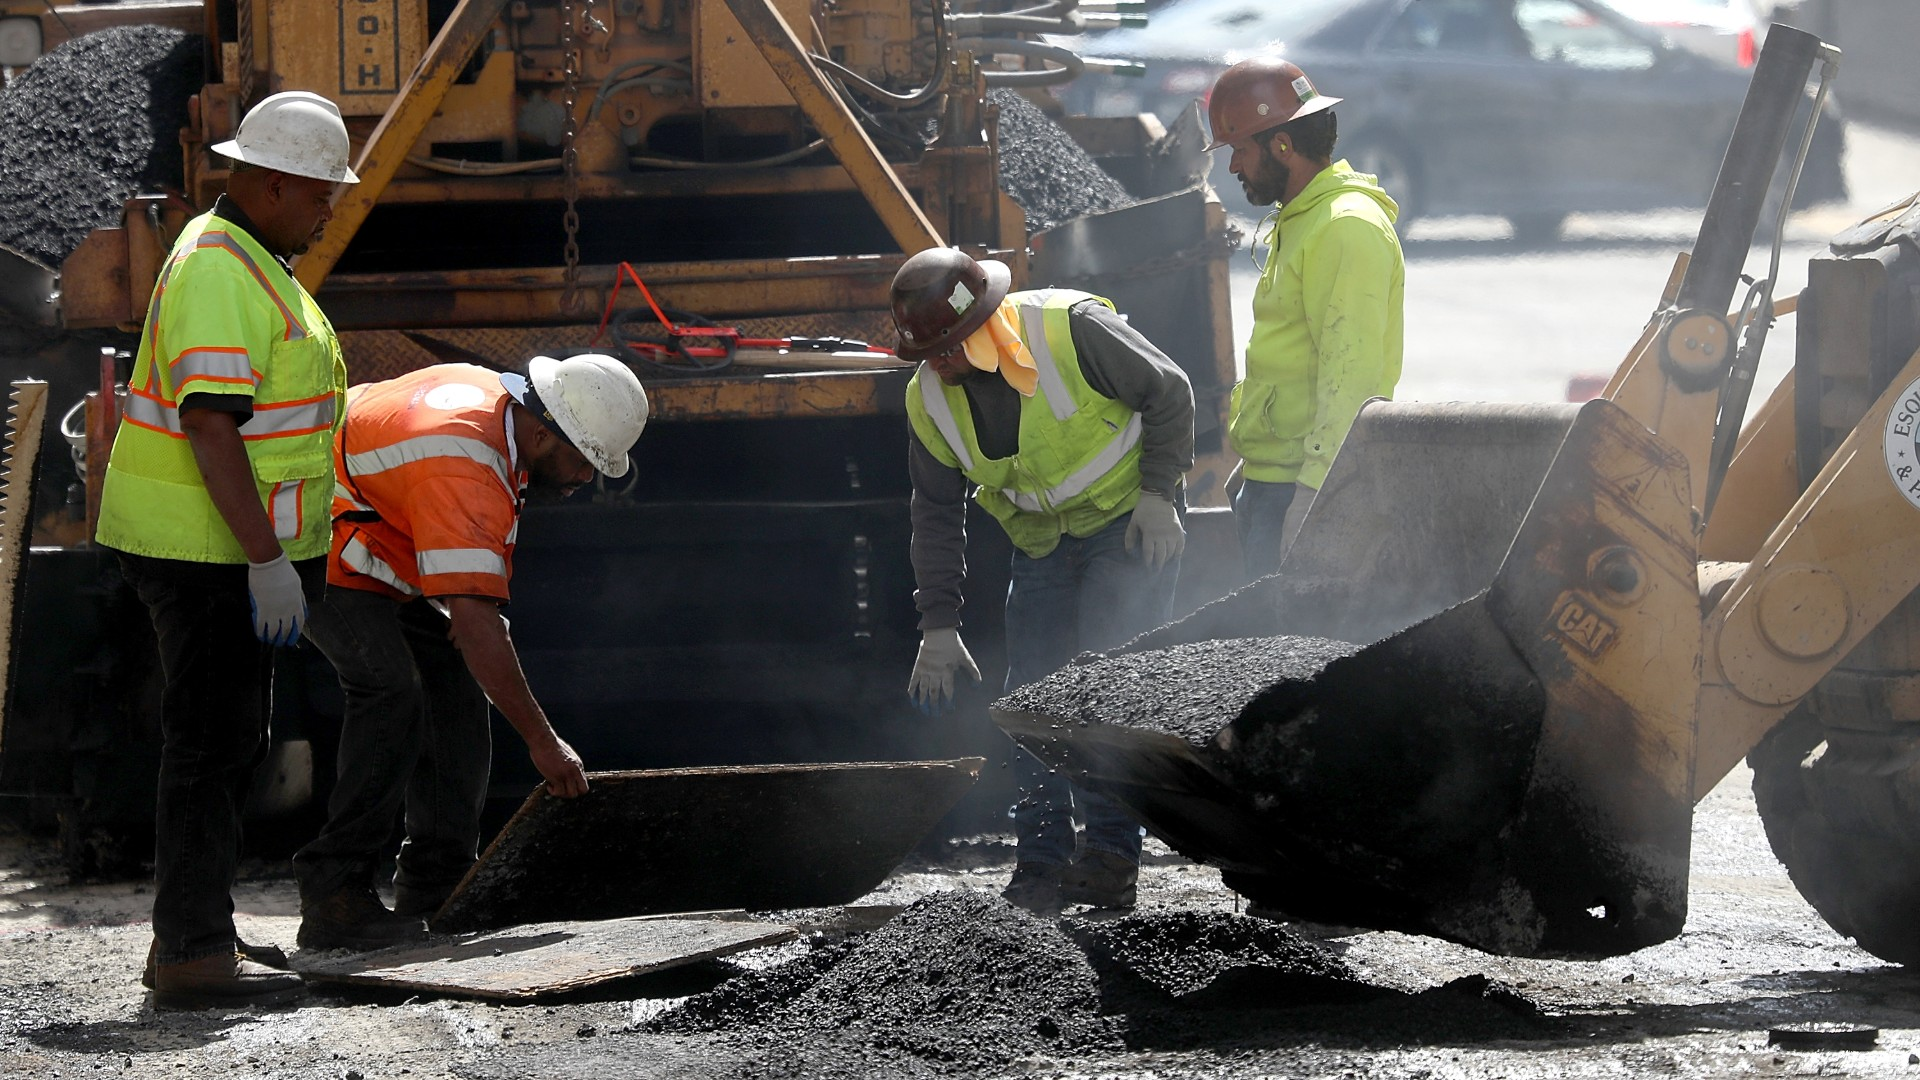 California's Infrastructure Gets C- in New Report Card